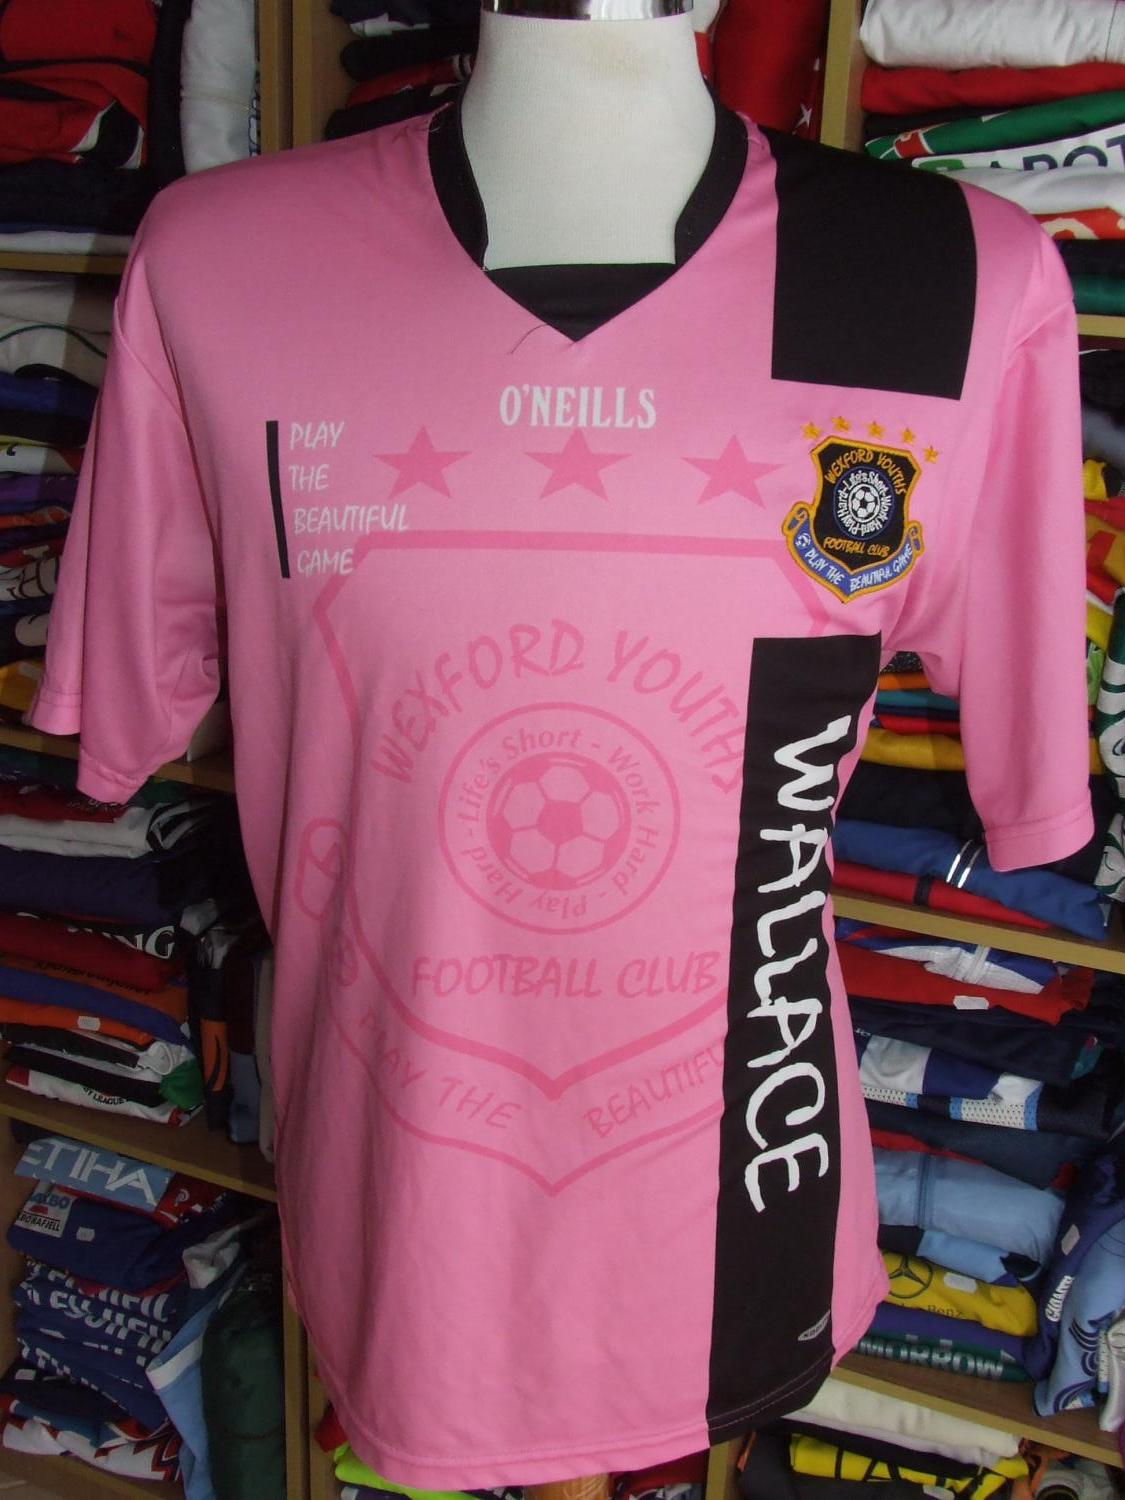 Wexford Youths F C Home Football Shirt 2010 2011